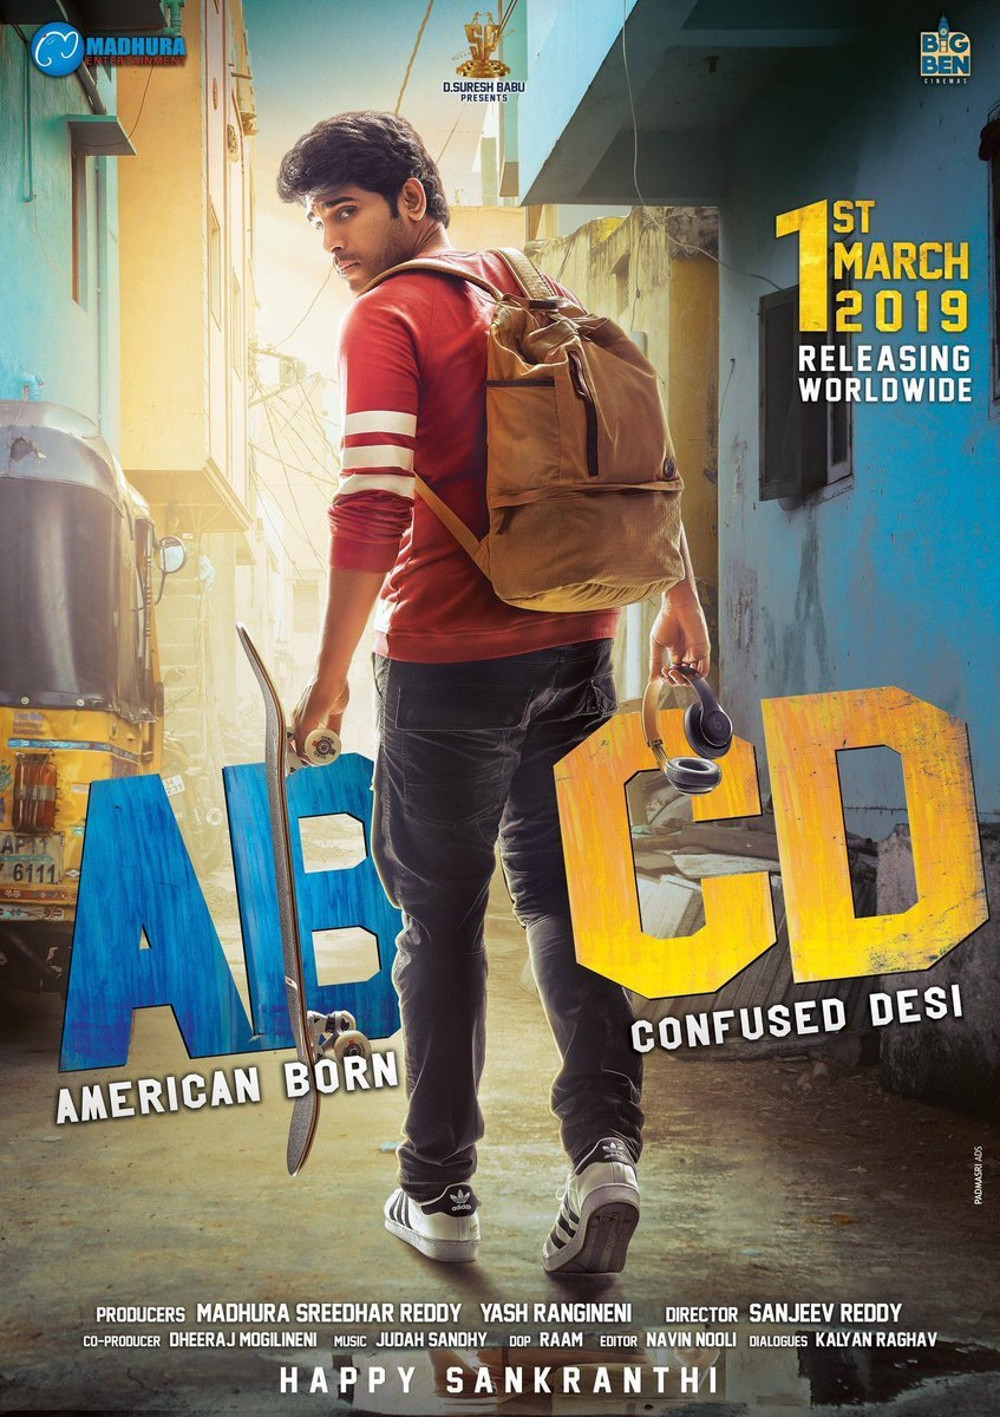 Allu Sirish ABCD will hit the screens on 1st March